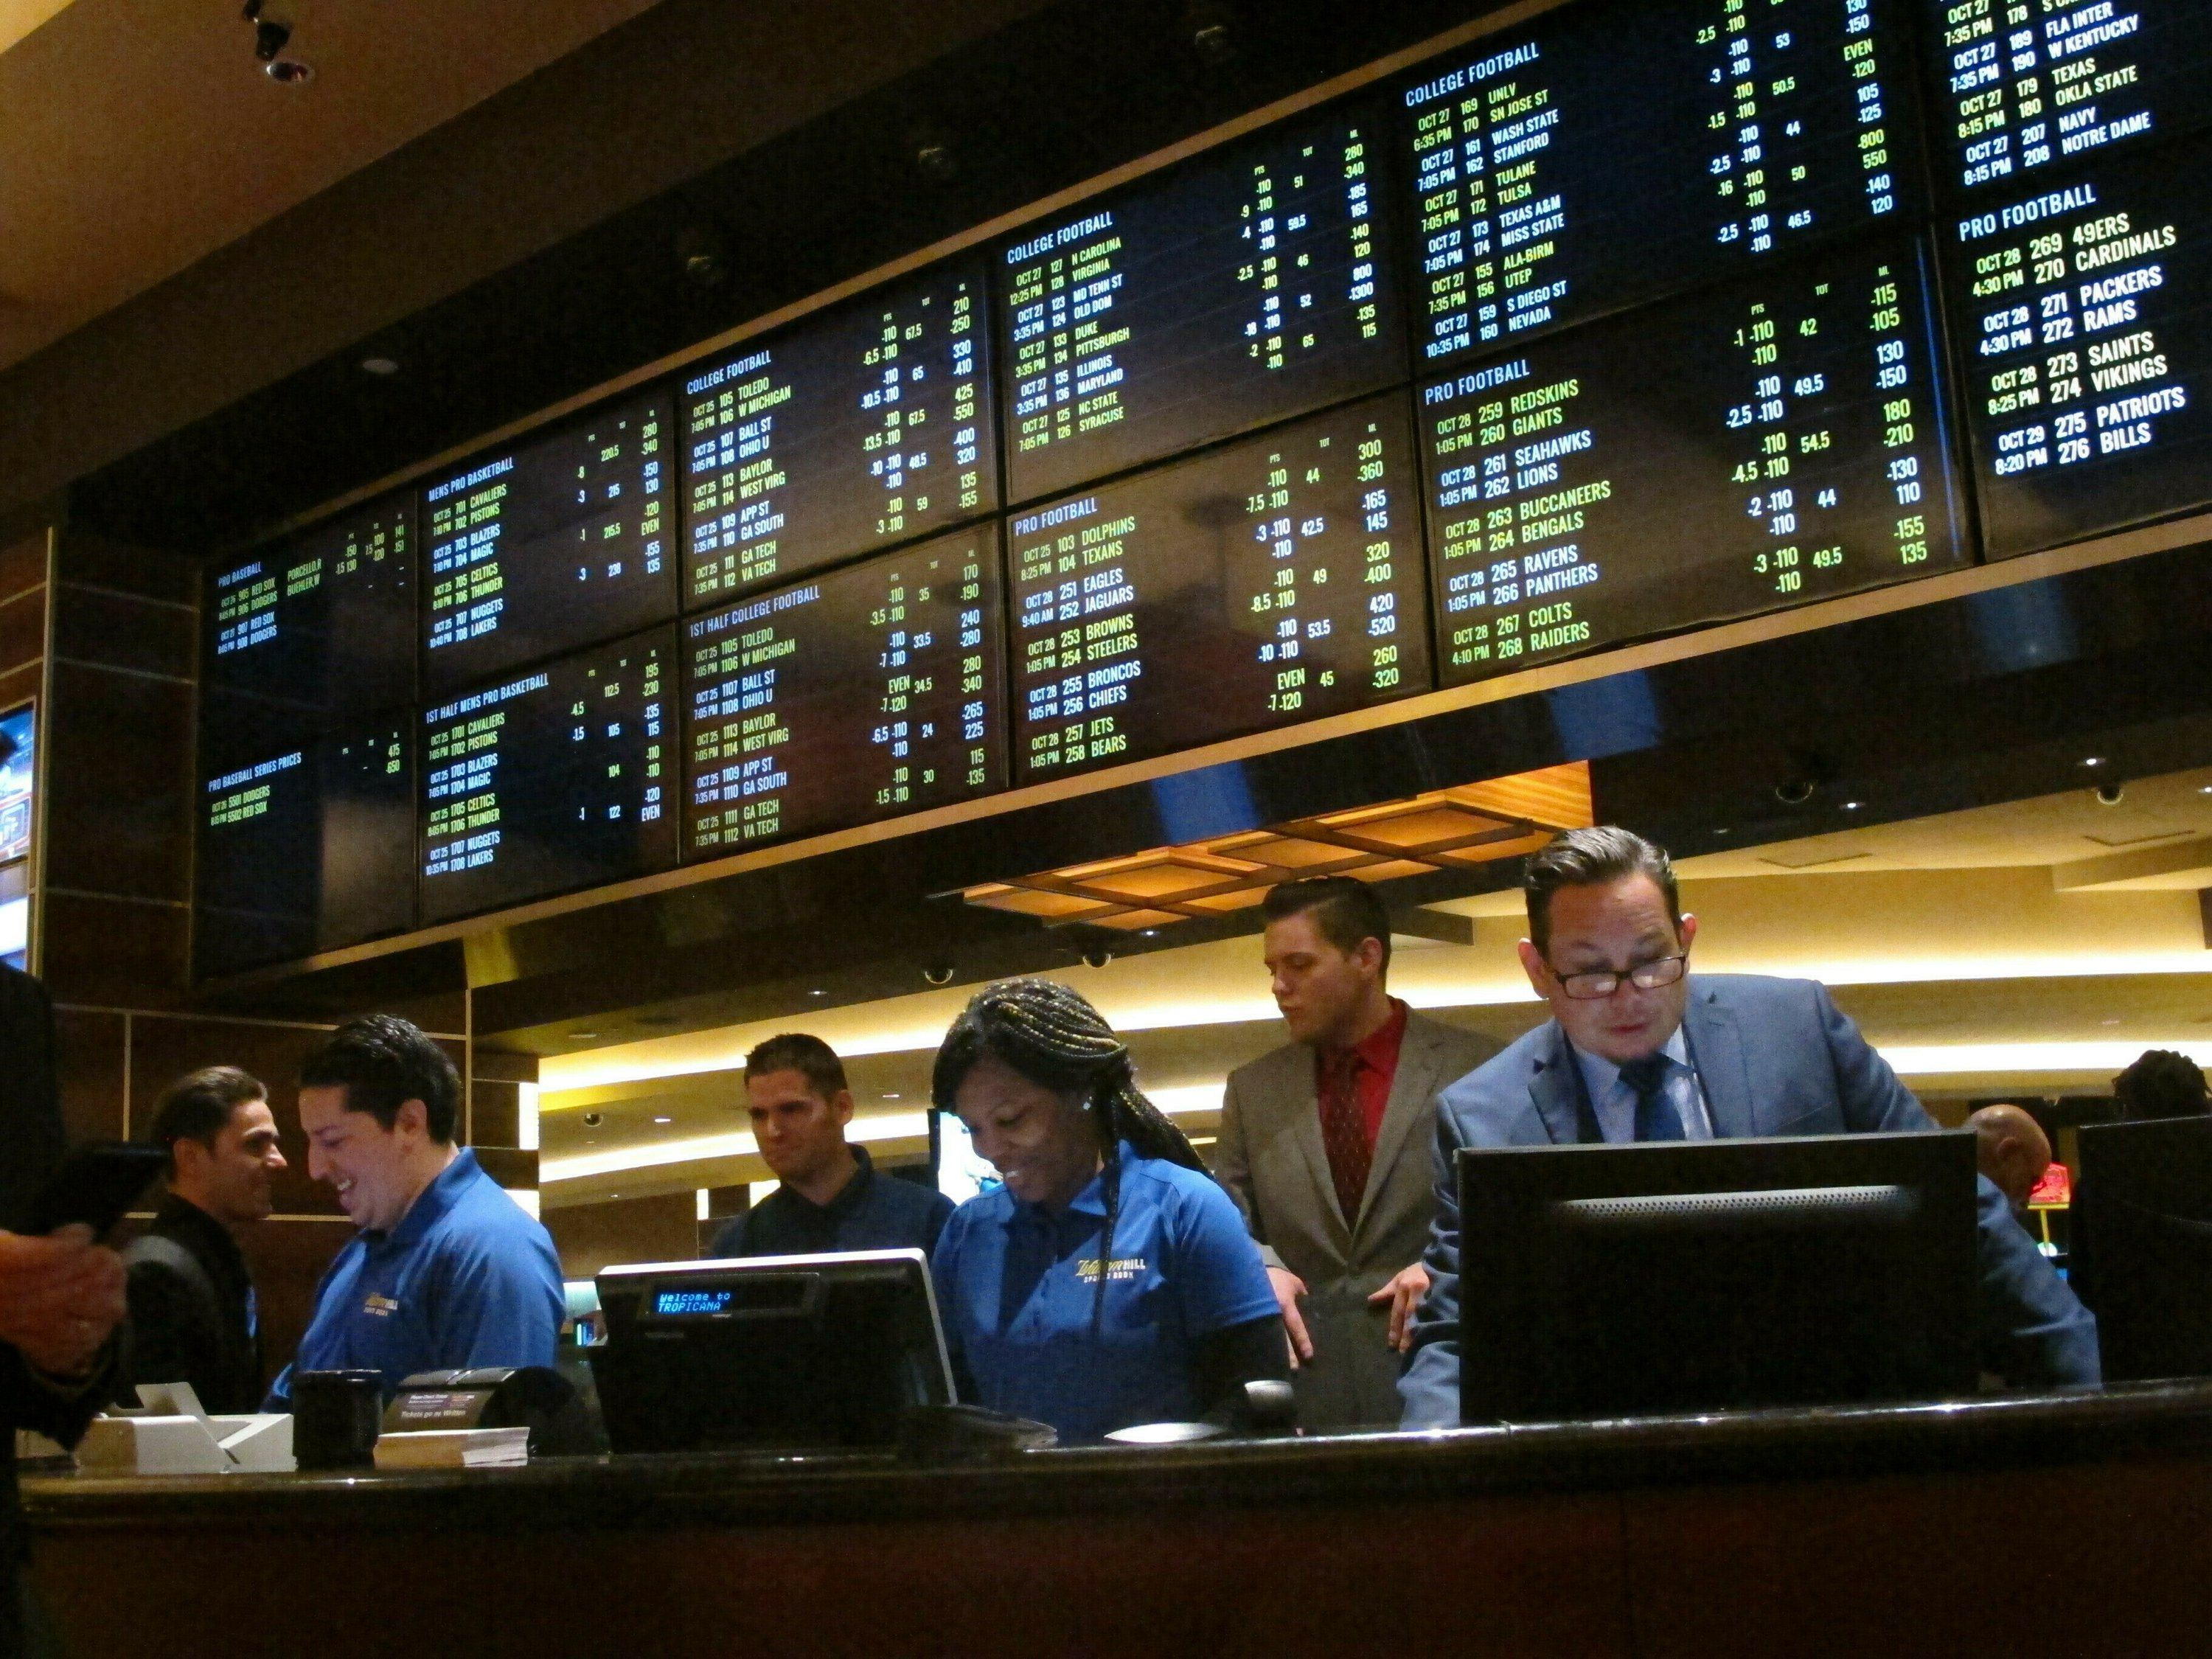 Sports betting legislation